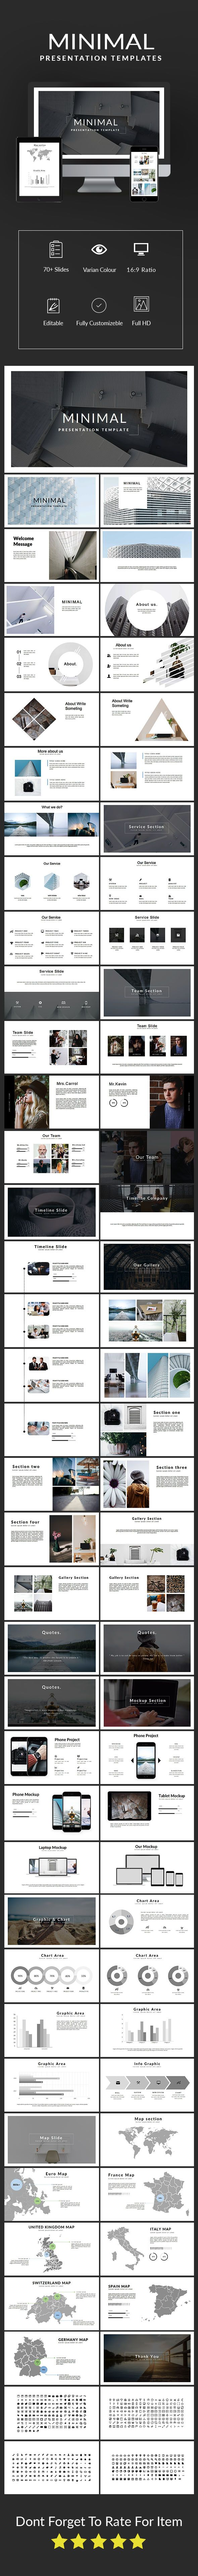 Minimal #Presentation Template - #Keynote #Templates Presentation Templates Download here: https://graphicriver.net/item/minimal-presentation-template/19334239?ref=alena994